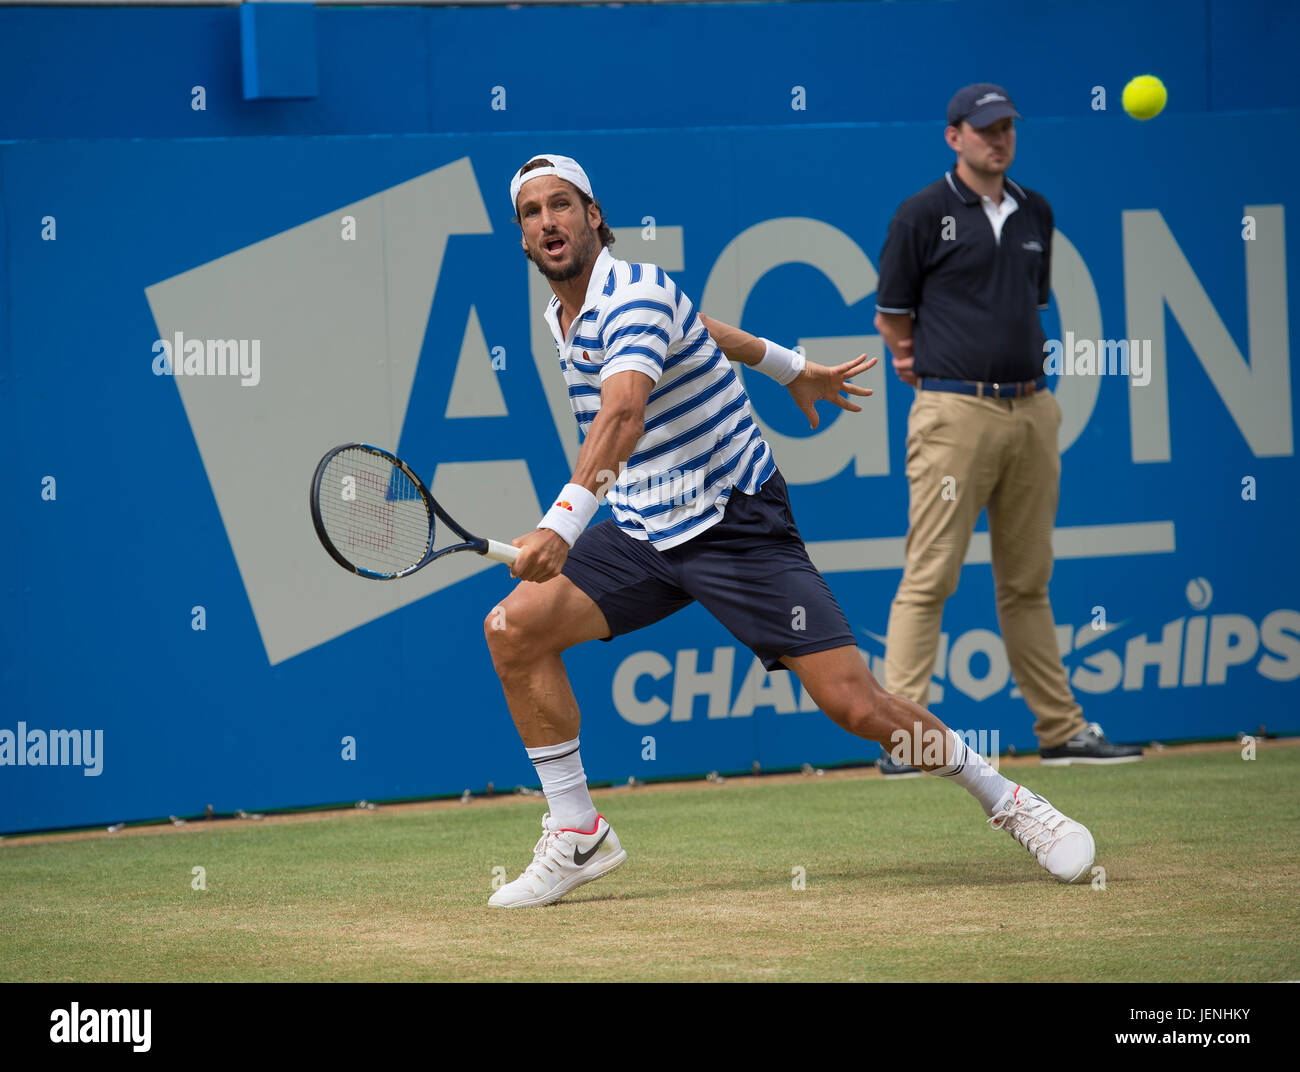 25th June 2017. Mens singles finals match at the 2017 Aegon Championships, The Queen's Club, London - Stock Image